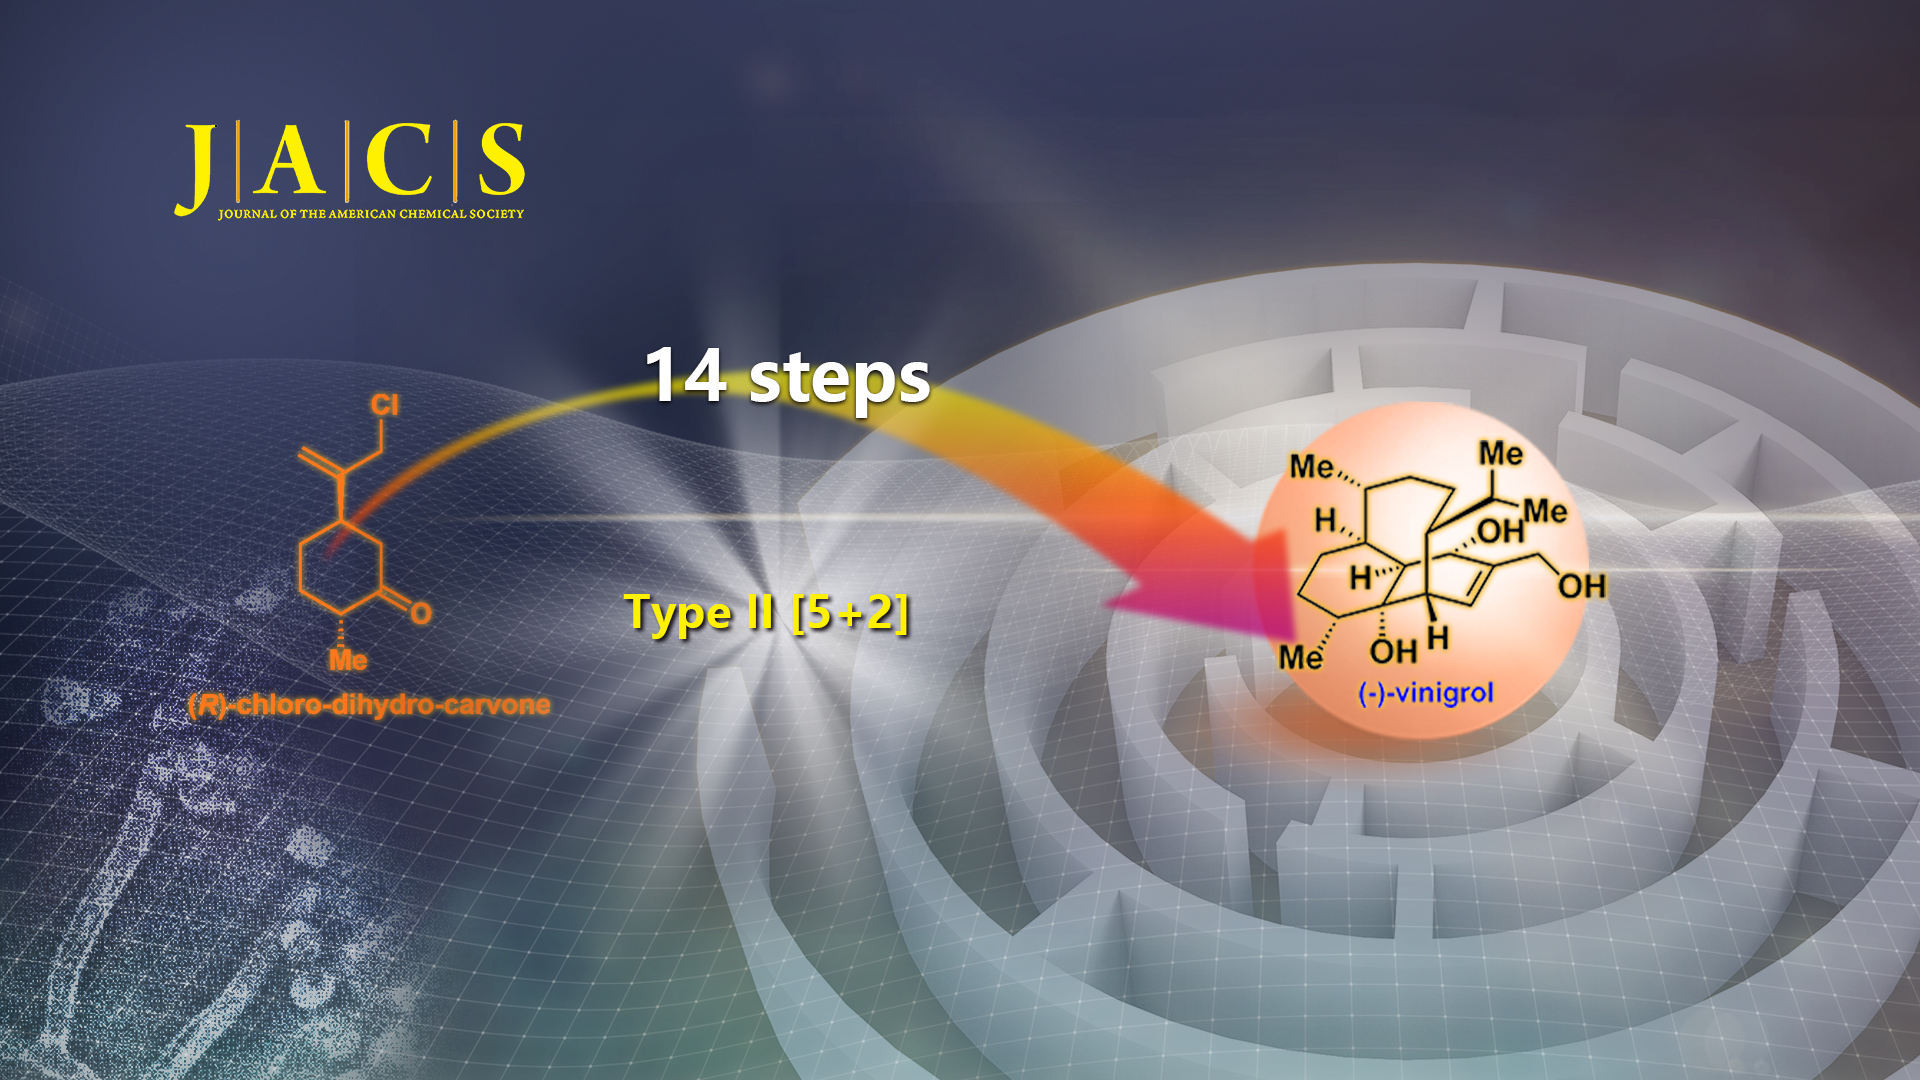 SUSTech chemists find new strategy for concise total synthesis of Vinigrol